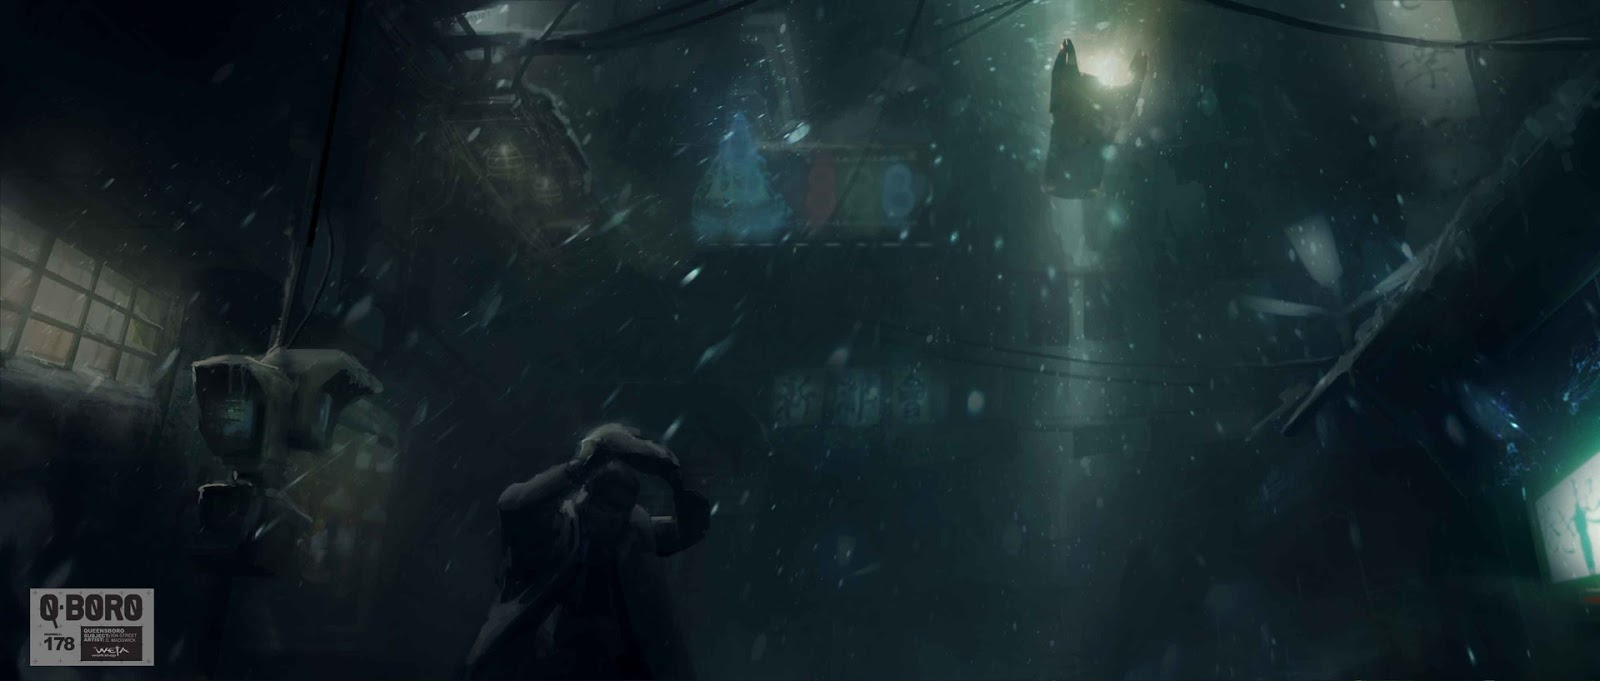 Dark City The Movie Concept Art